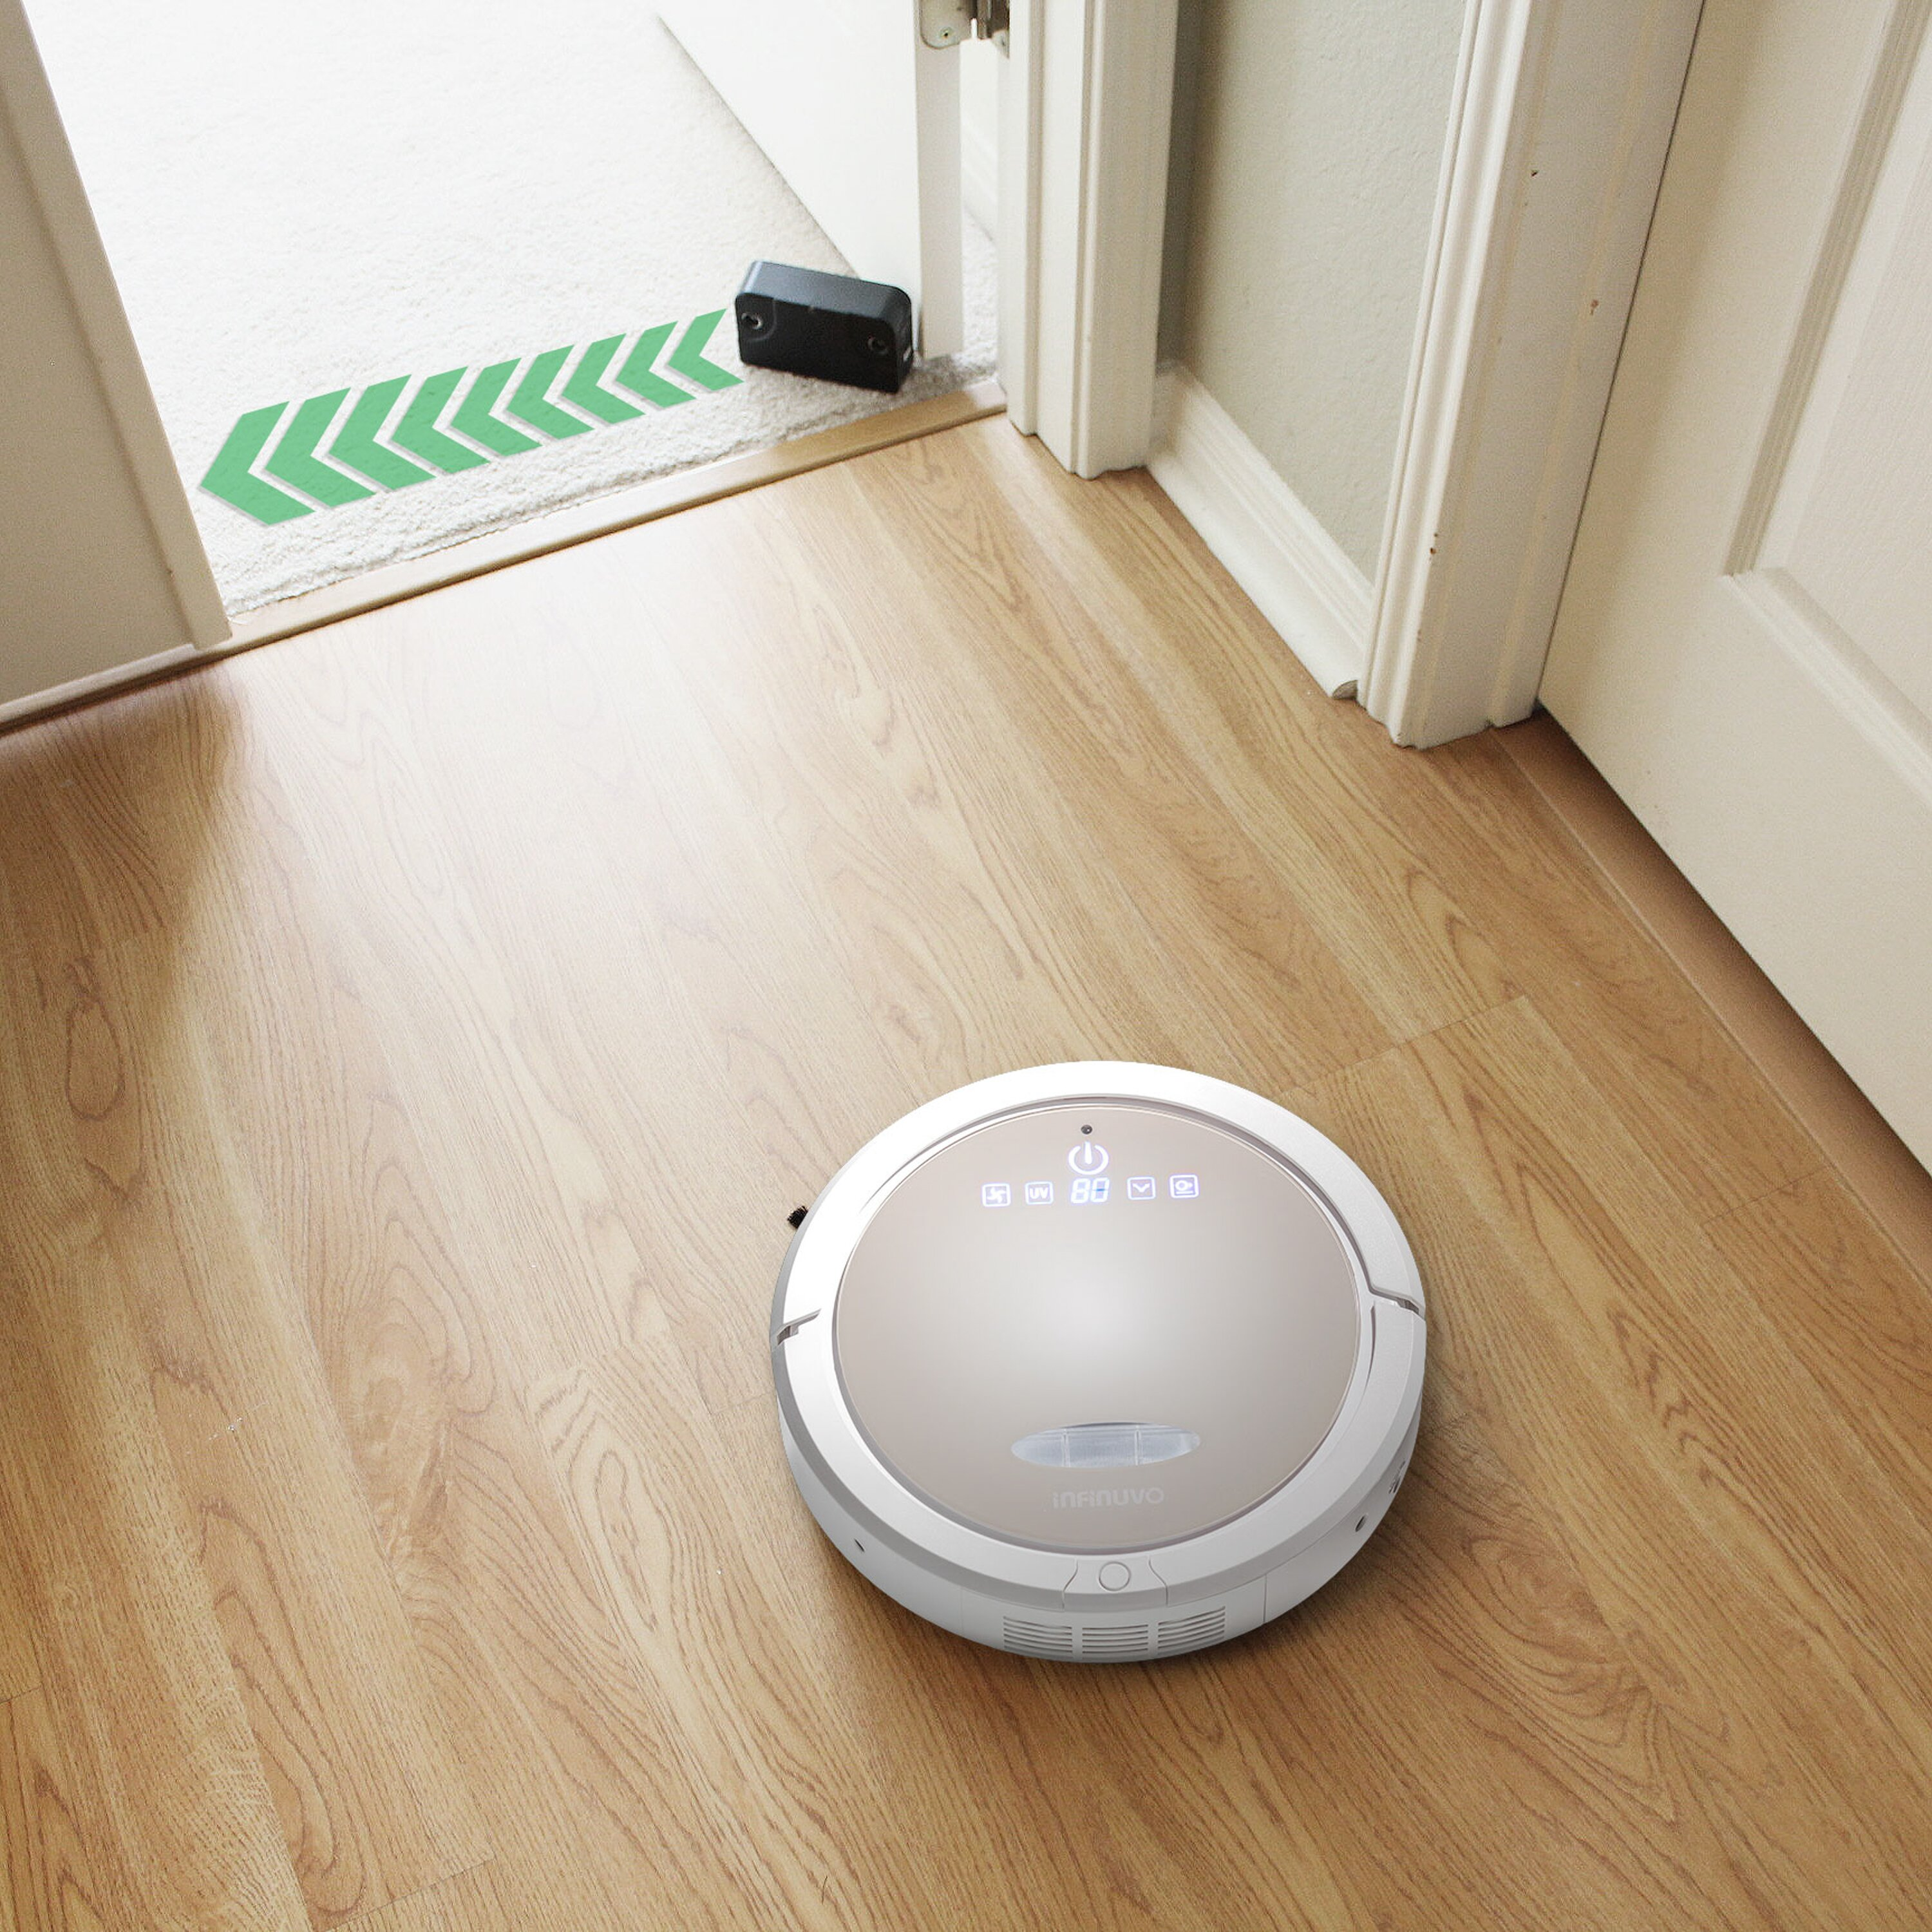 Dust mop for wood floors - Infinuvo 5 In 1 Robot Vacuum With Water Tank Dry And Wet Floor Cleaner